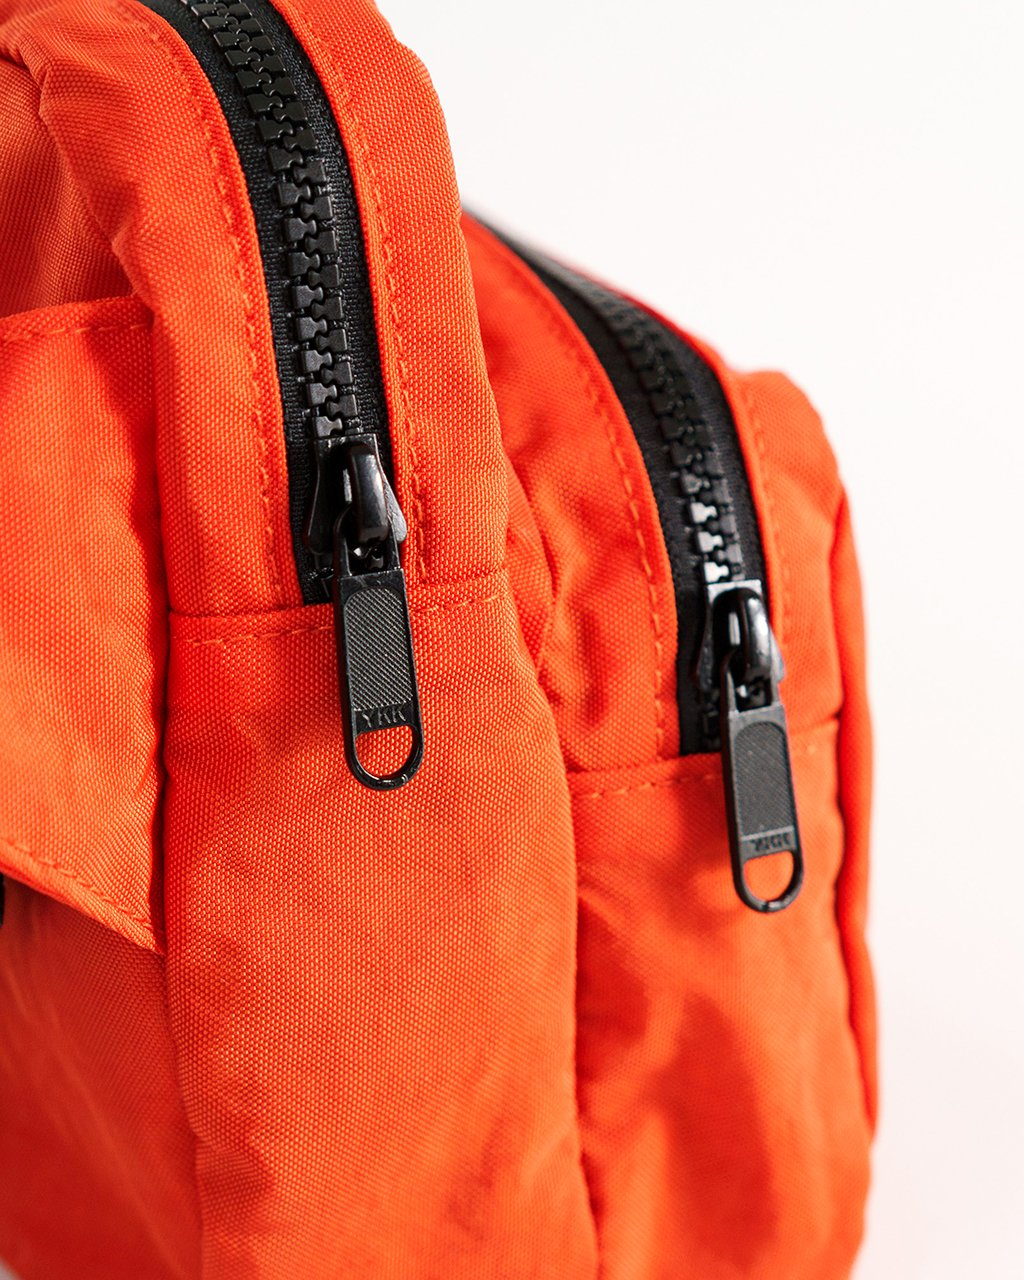 Detailed shot of the double zip pockets